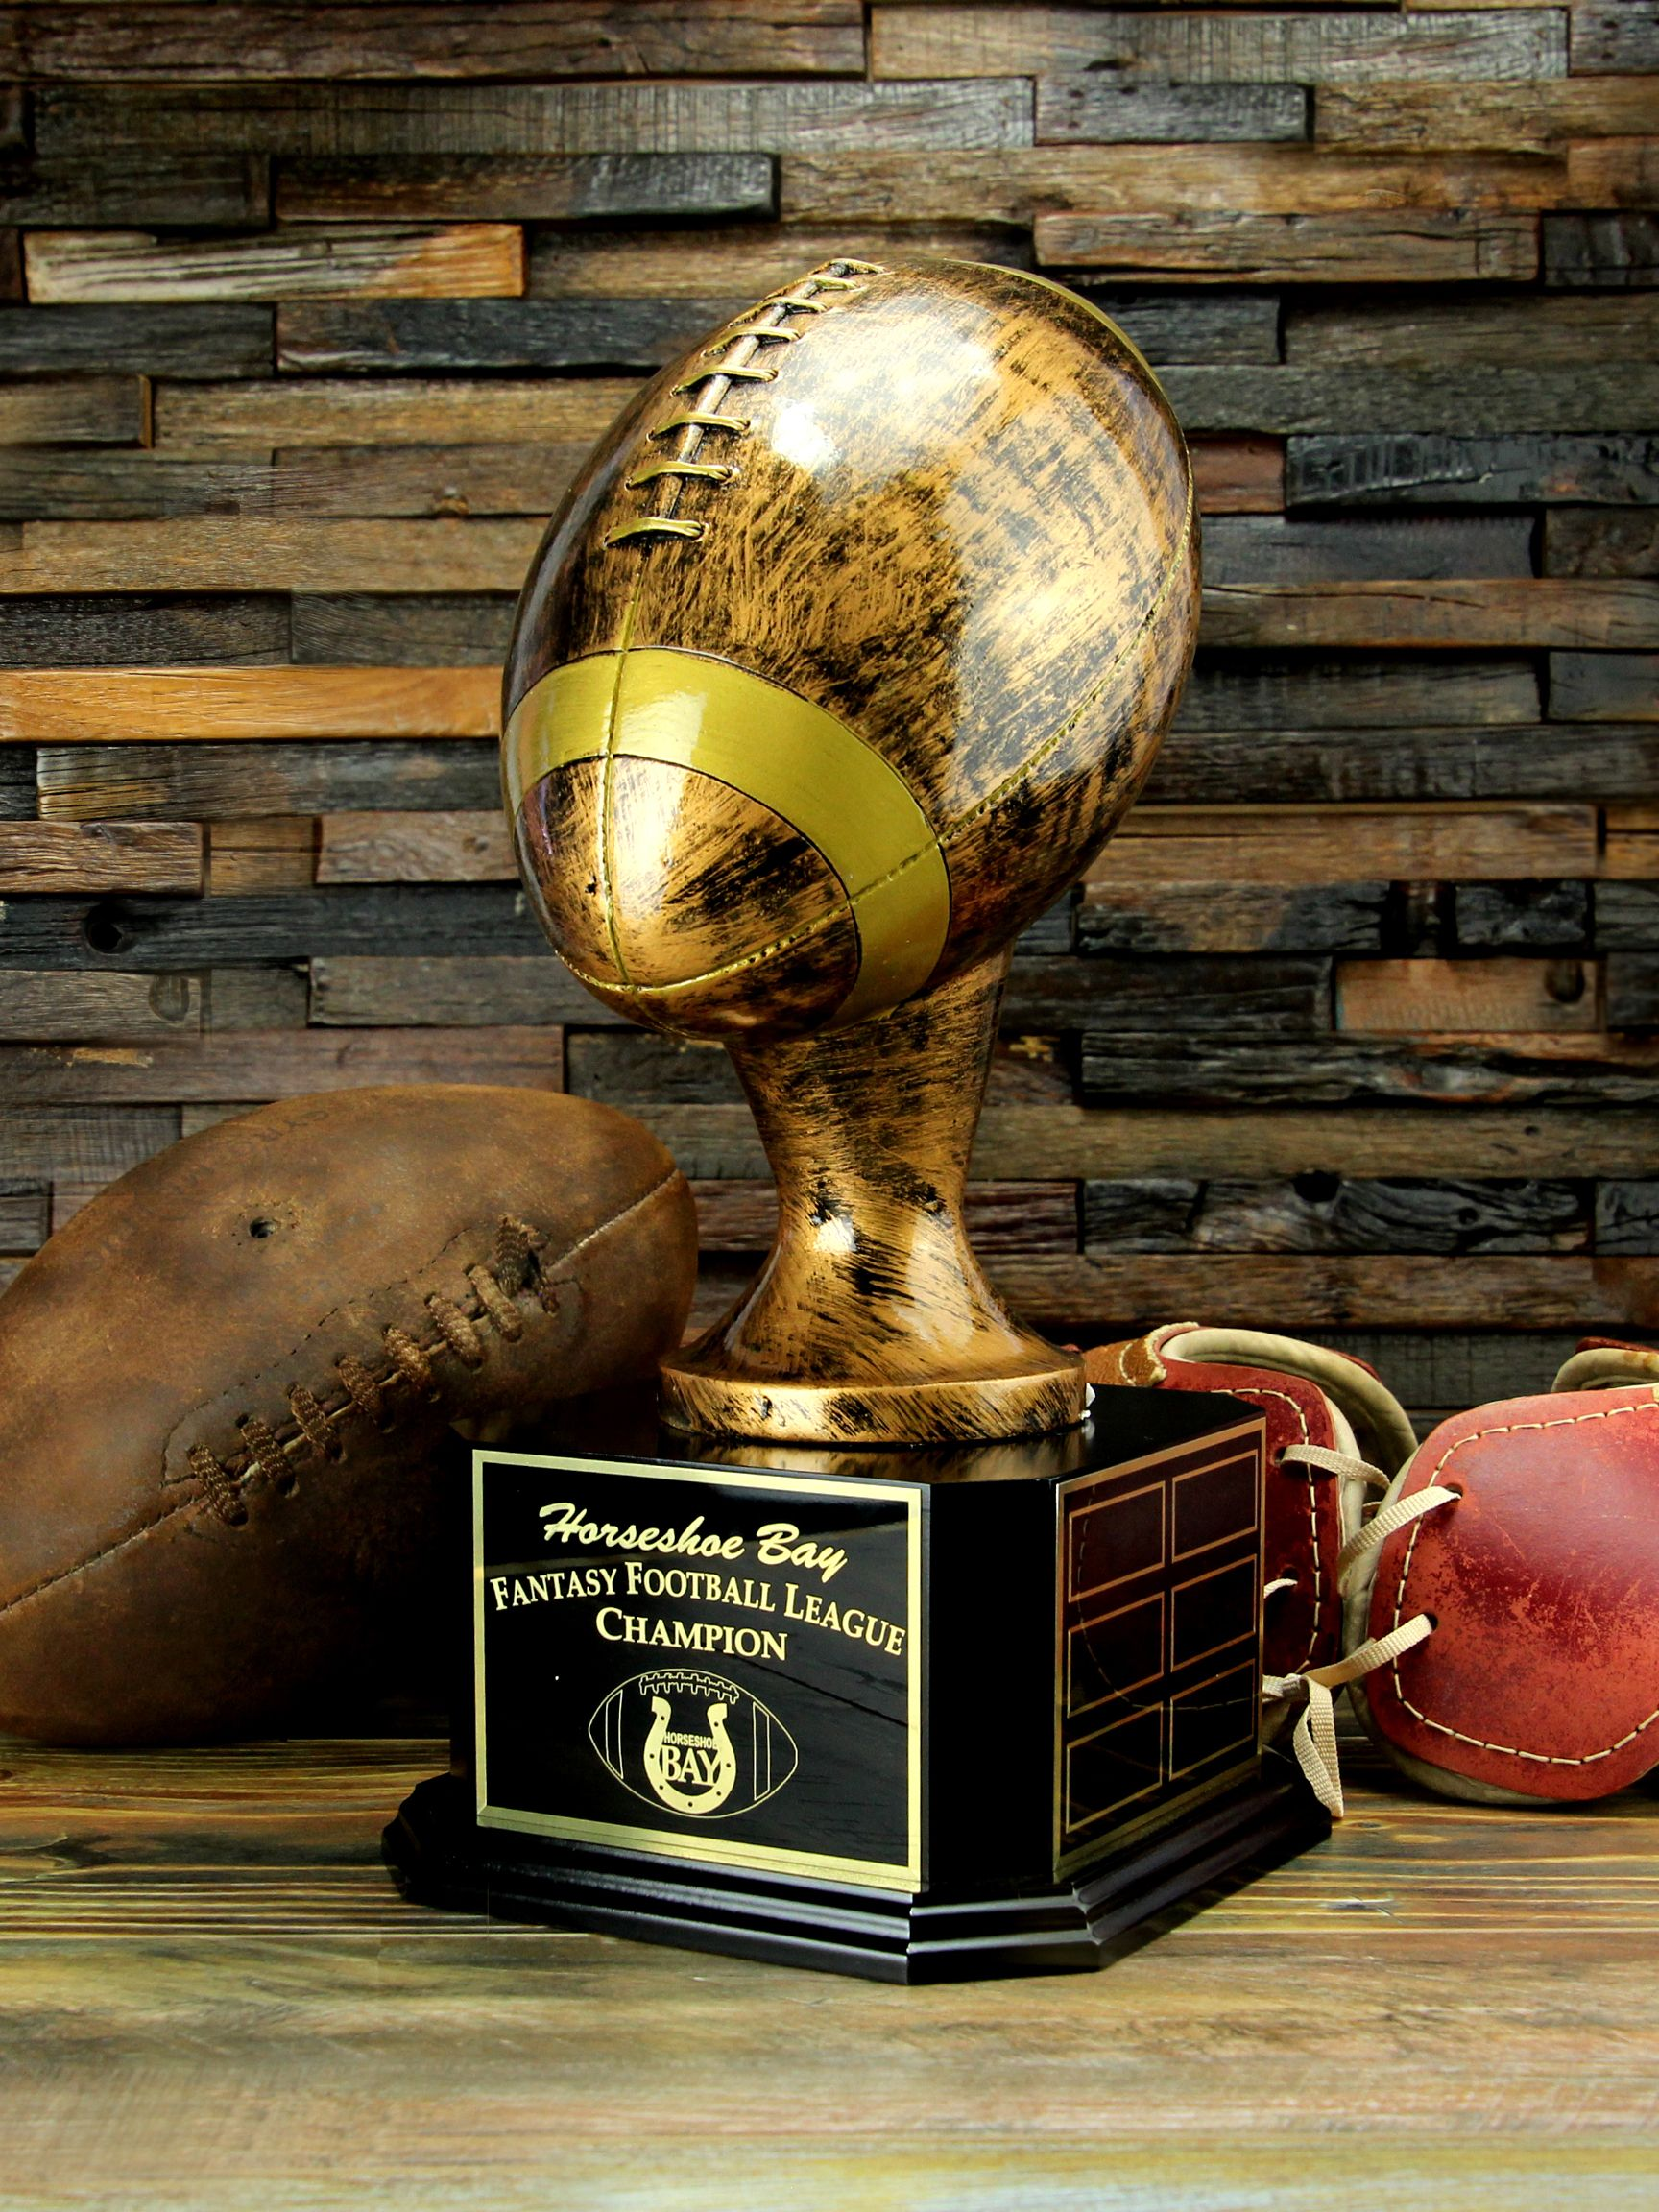 AMERICAN FOOTBALL TROPHY 3 SIZES AVAILABLE ENGRAVED FREE NFL USA TOUCHDOWN SCORE